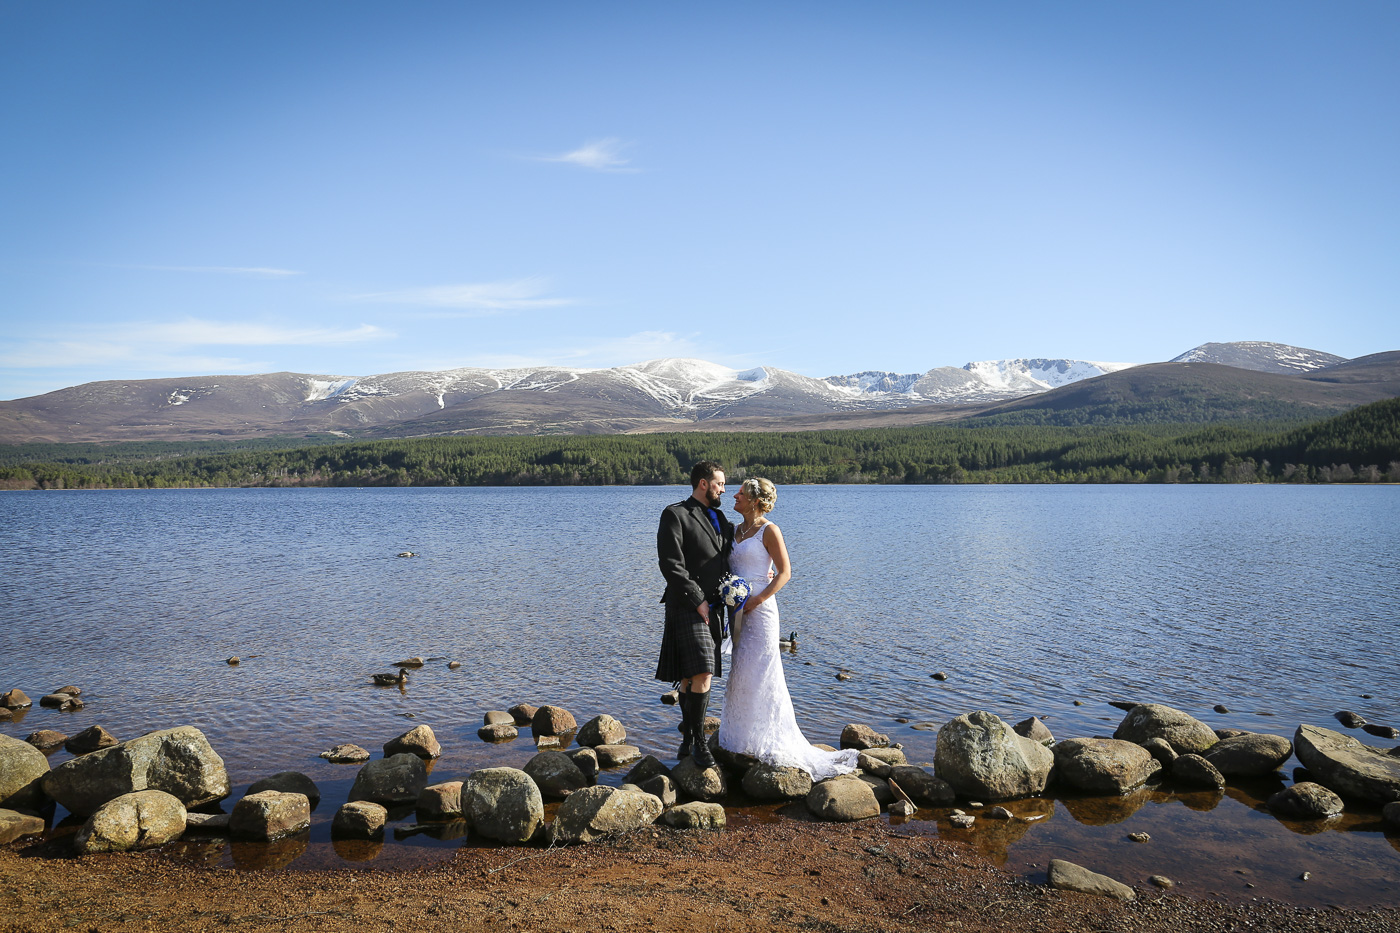 Wedding photography at The Hilton Coylumbridge and Loch Morlich-0101